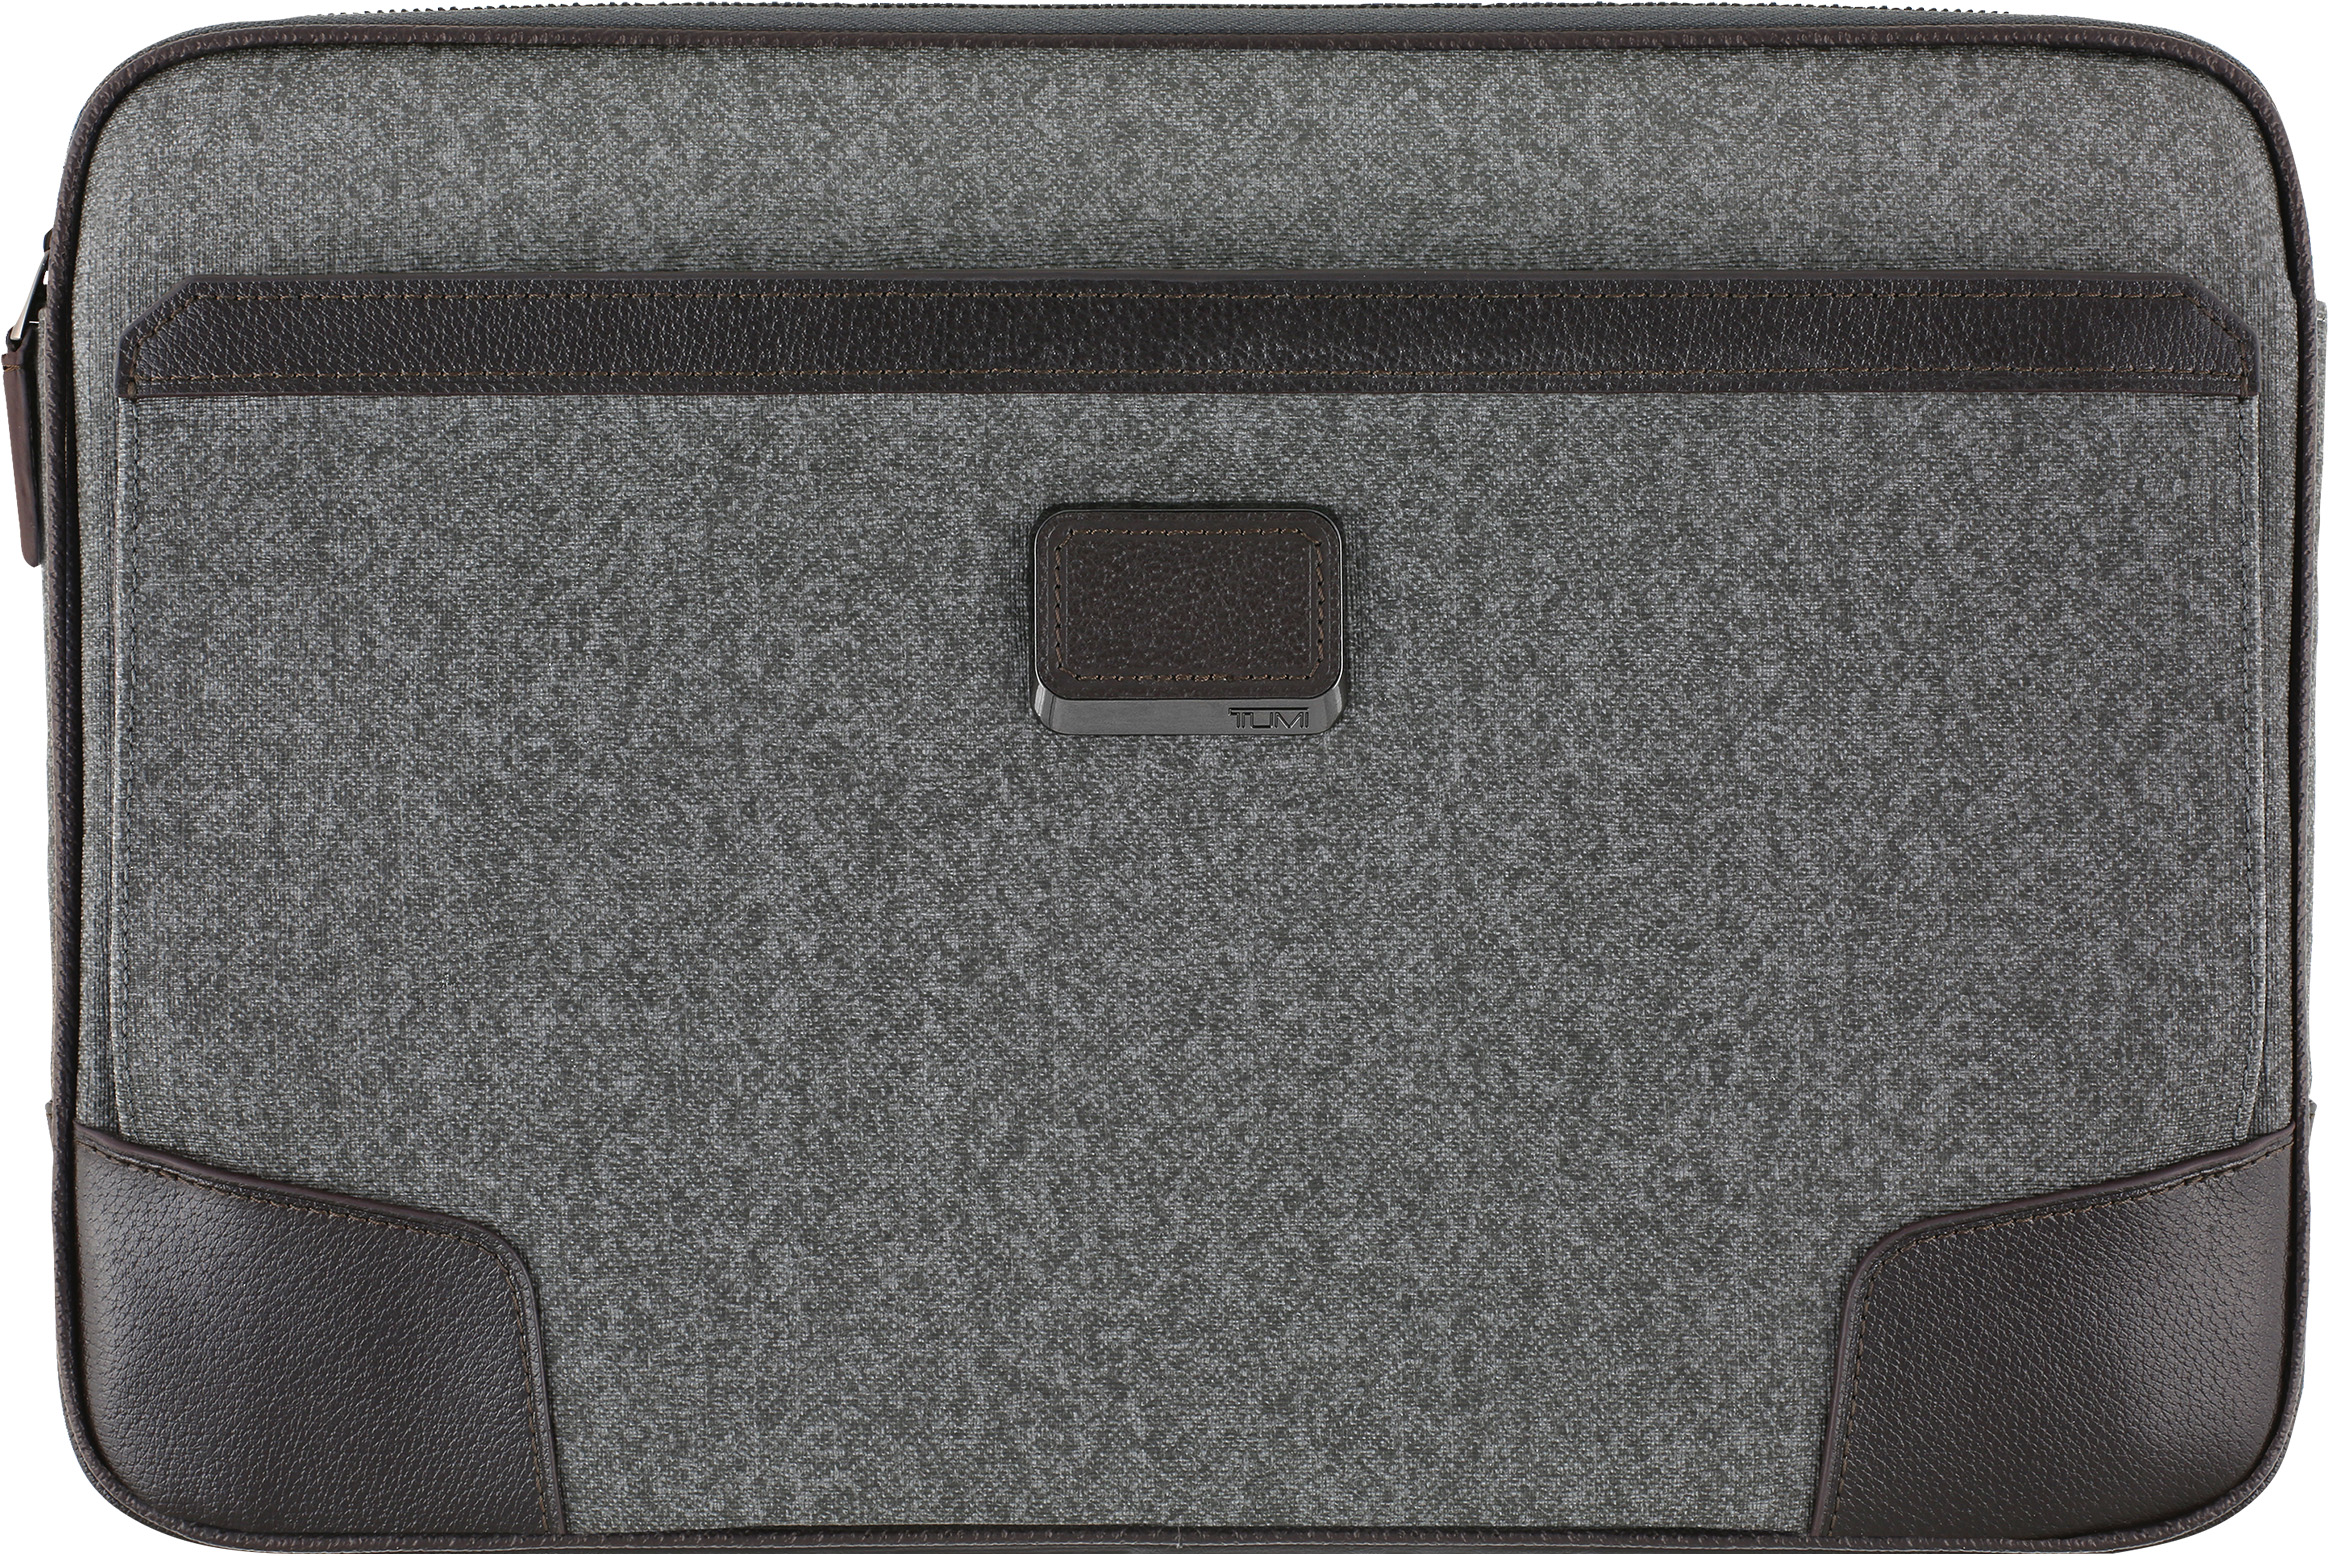 TUMI Coated Canvas Tablet Cover for Surface Pro 4 Deal